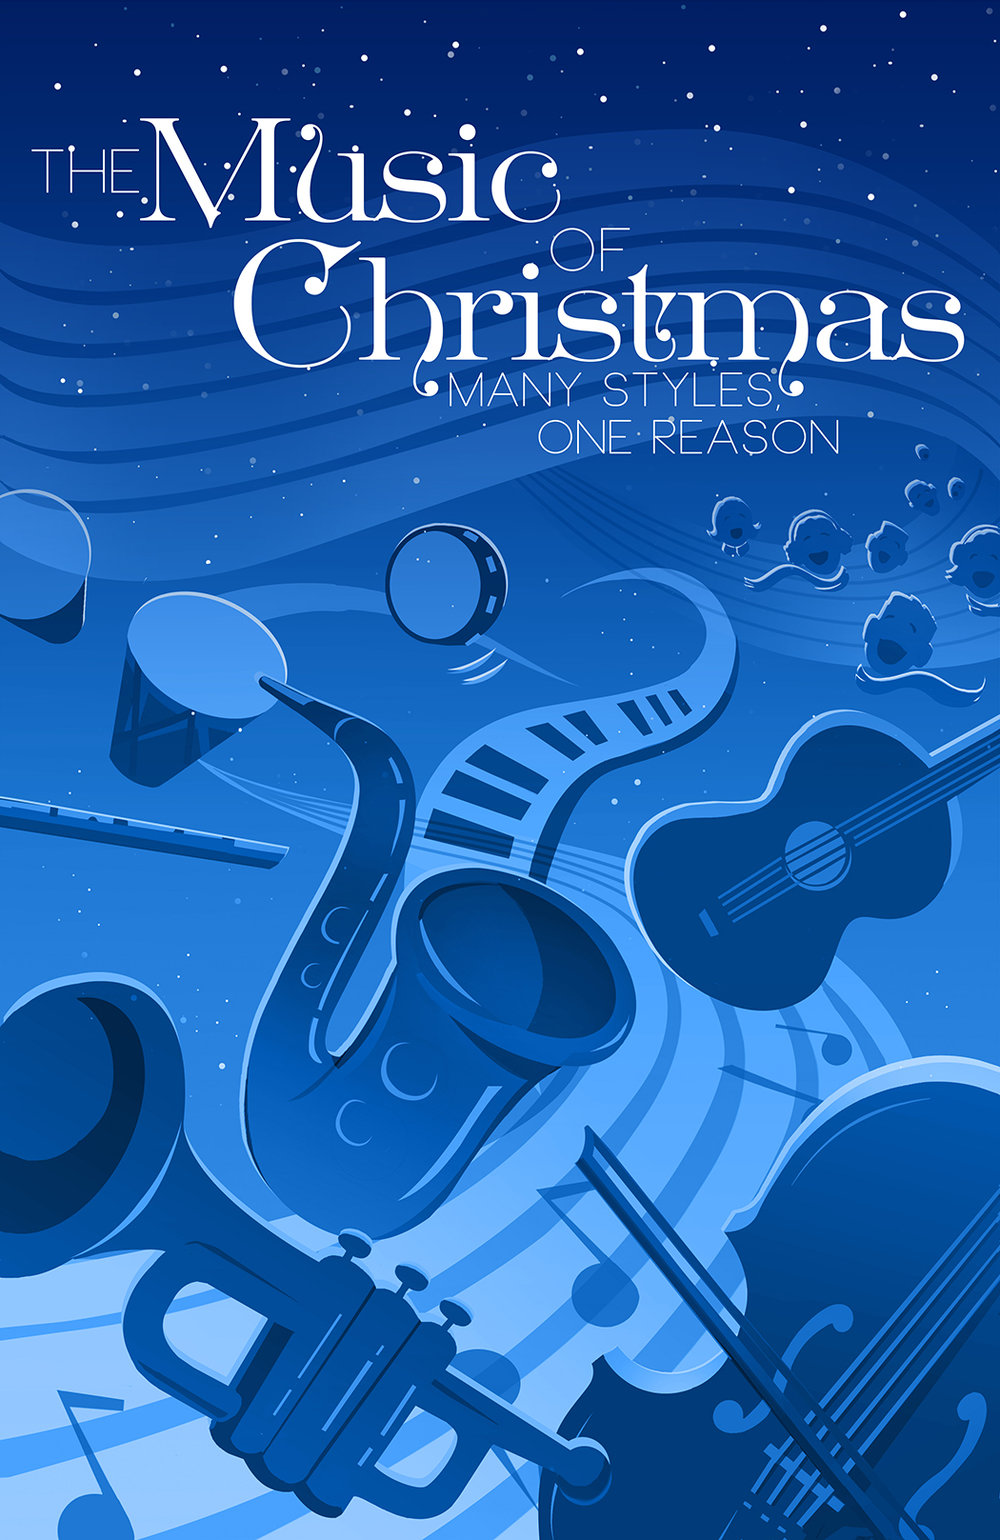 Music of Christmas 2014 final art.jpg